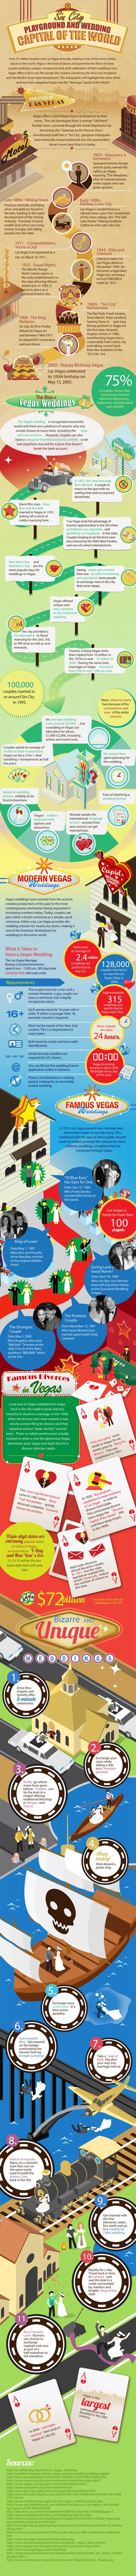 Totally Informative Las Vegas Wedding Infographic From Treasure Island Resort And Casino